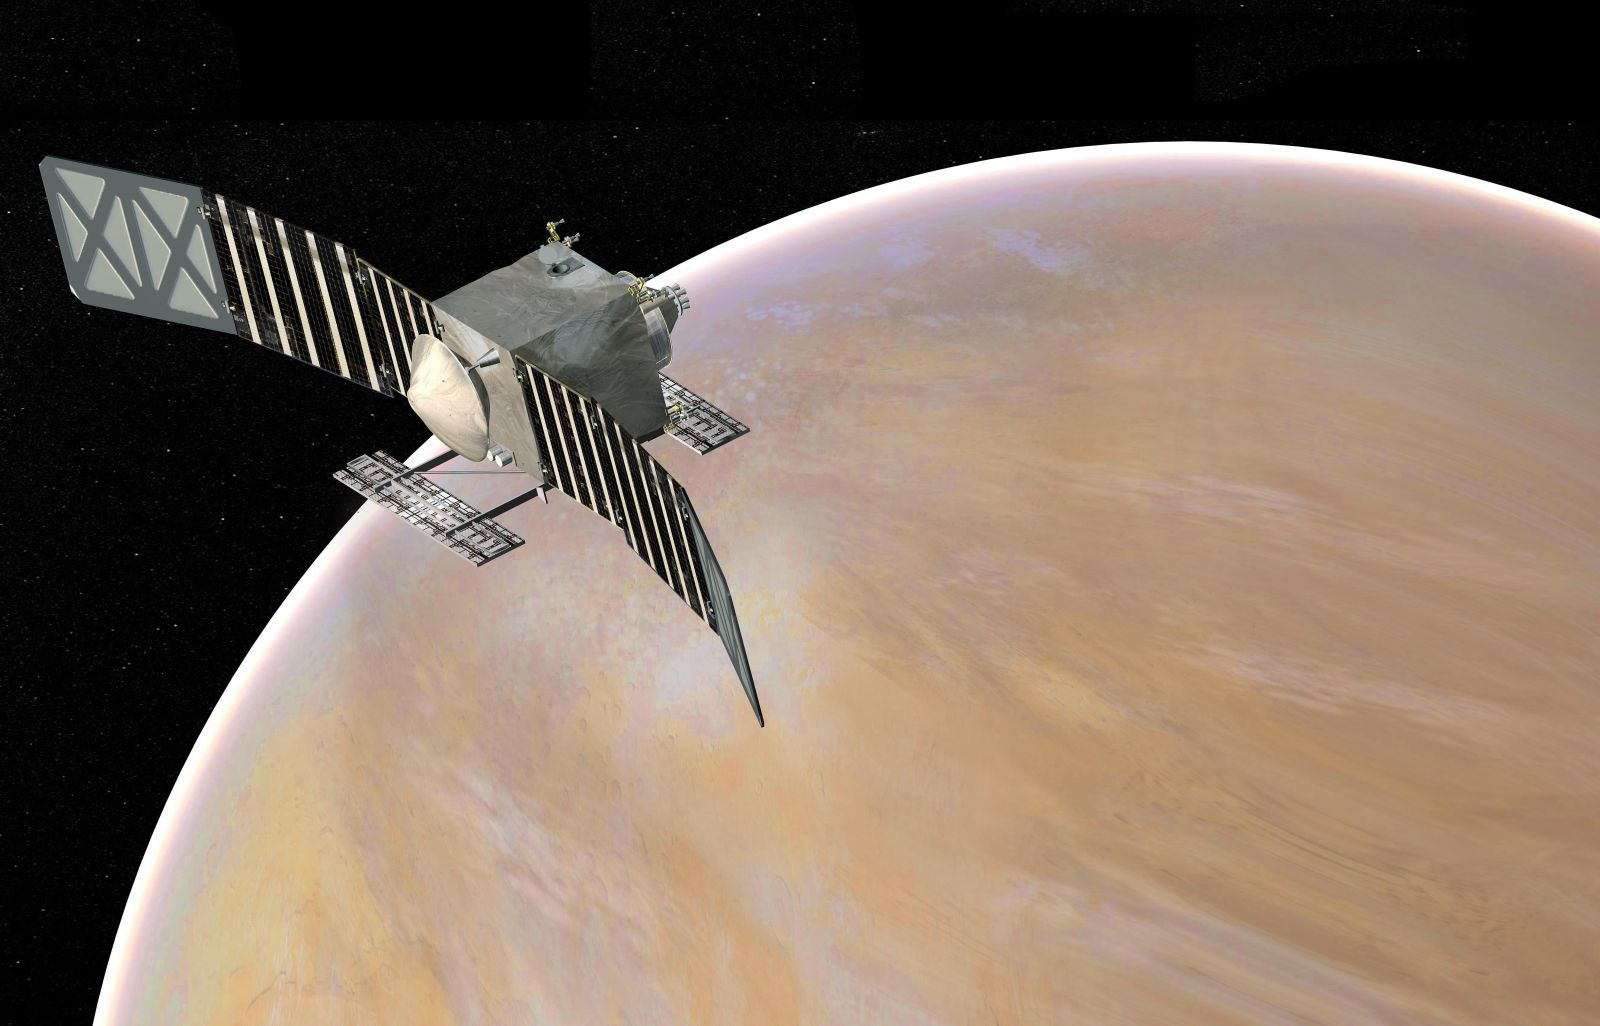 An illustration of the VERITAS orbiter, which was one of two missions selected to study Venus at the end of the 2020s under NASA's Discovery Program. Credit: NASA